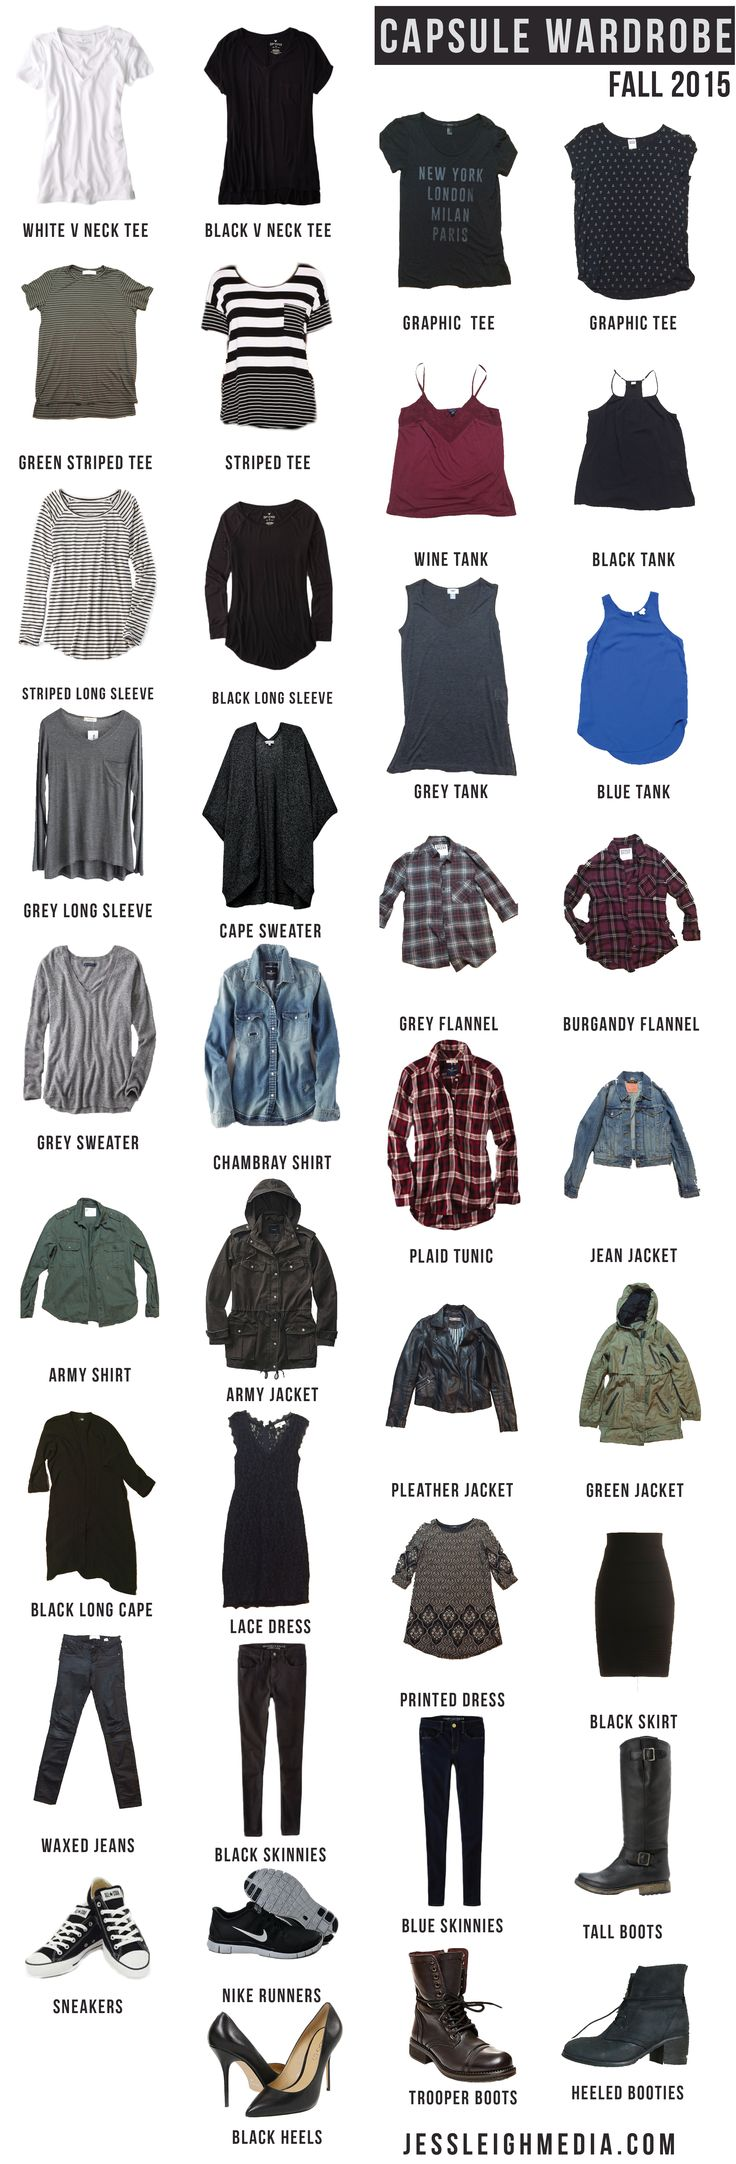 Capsule Wardrobe Project: FALL 2015 Declutter your closet, destress your choices and save money!